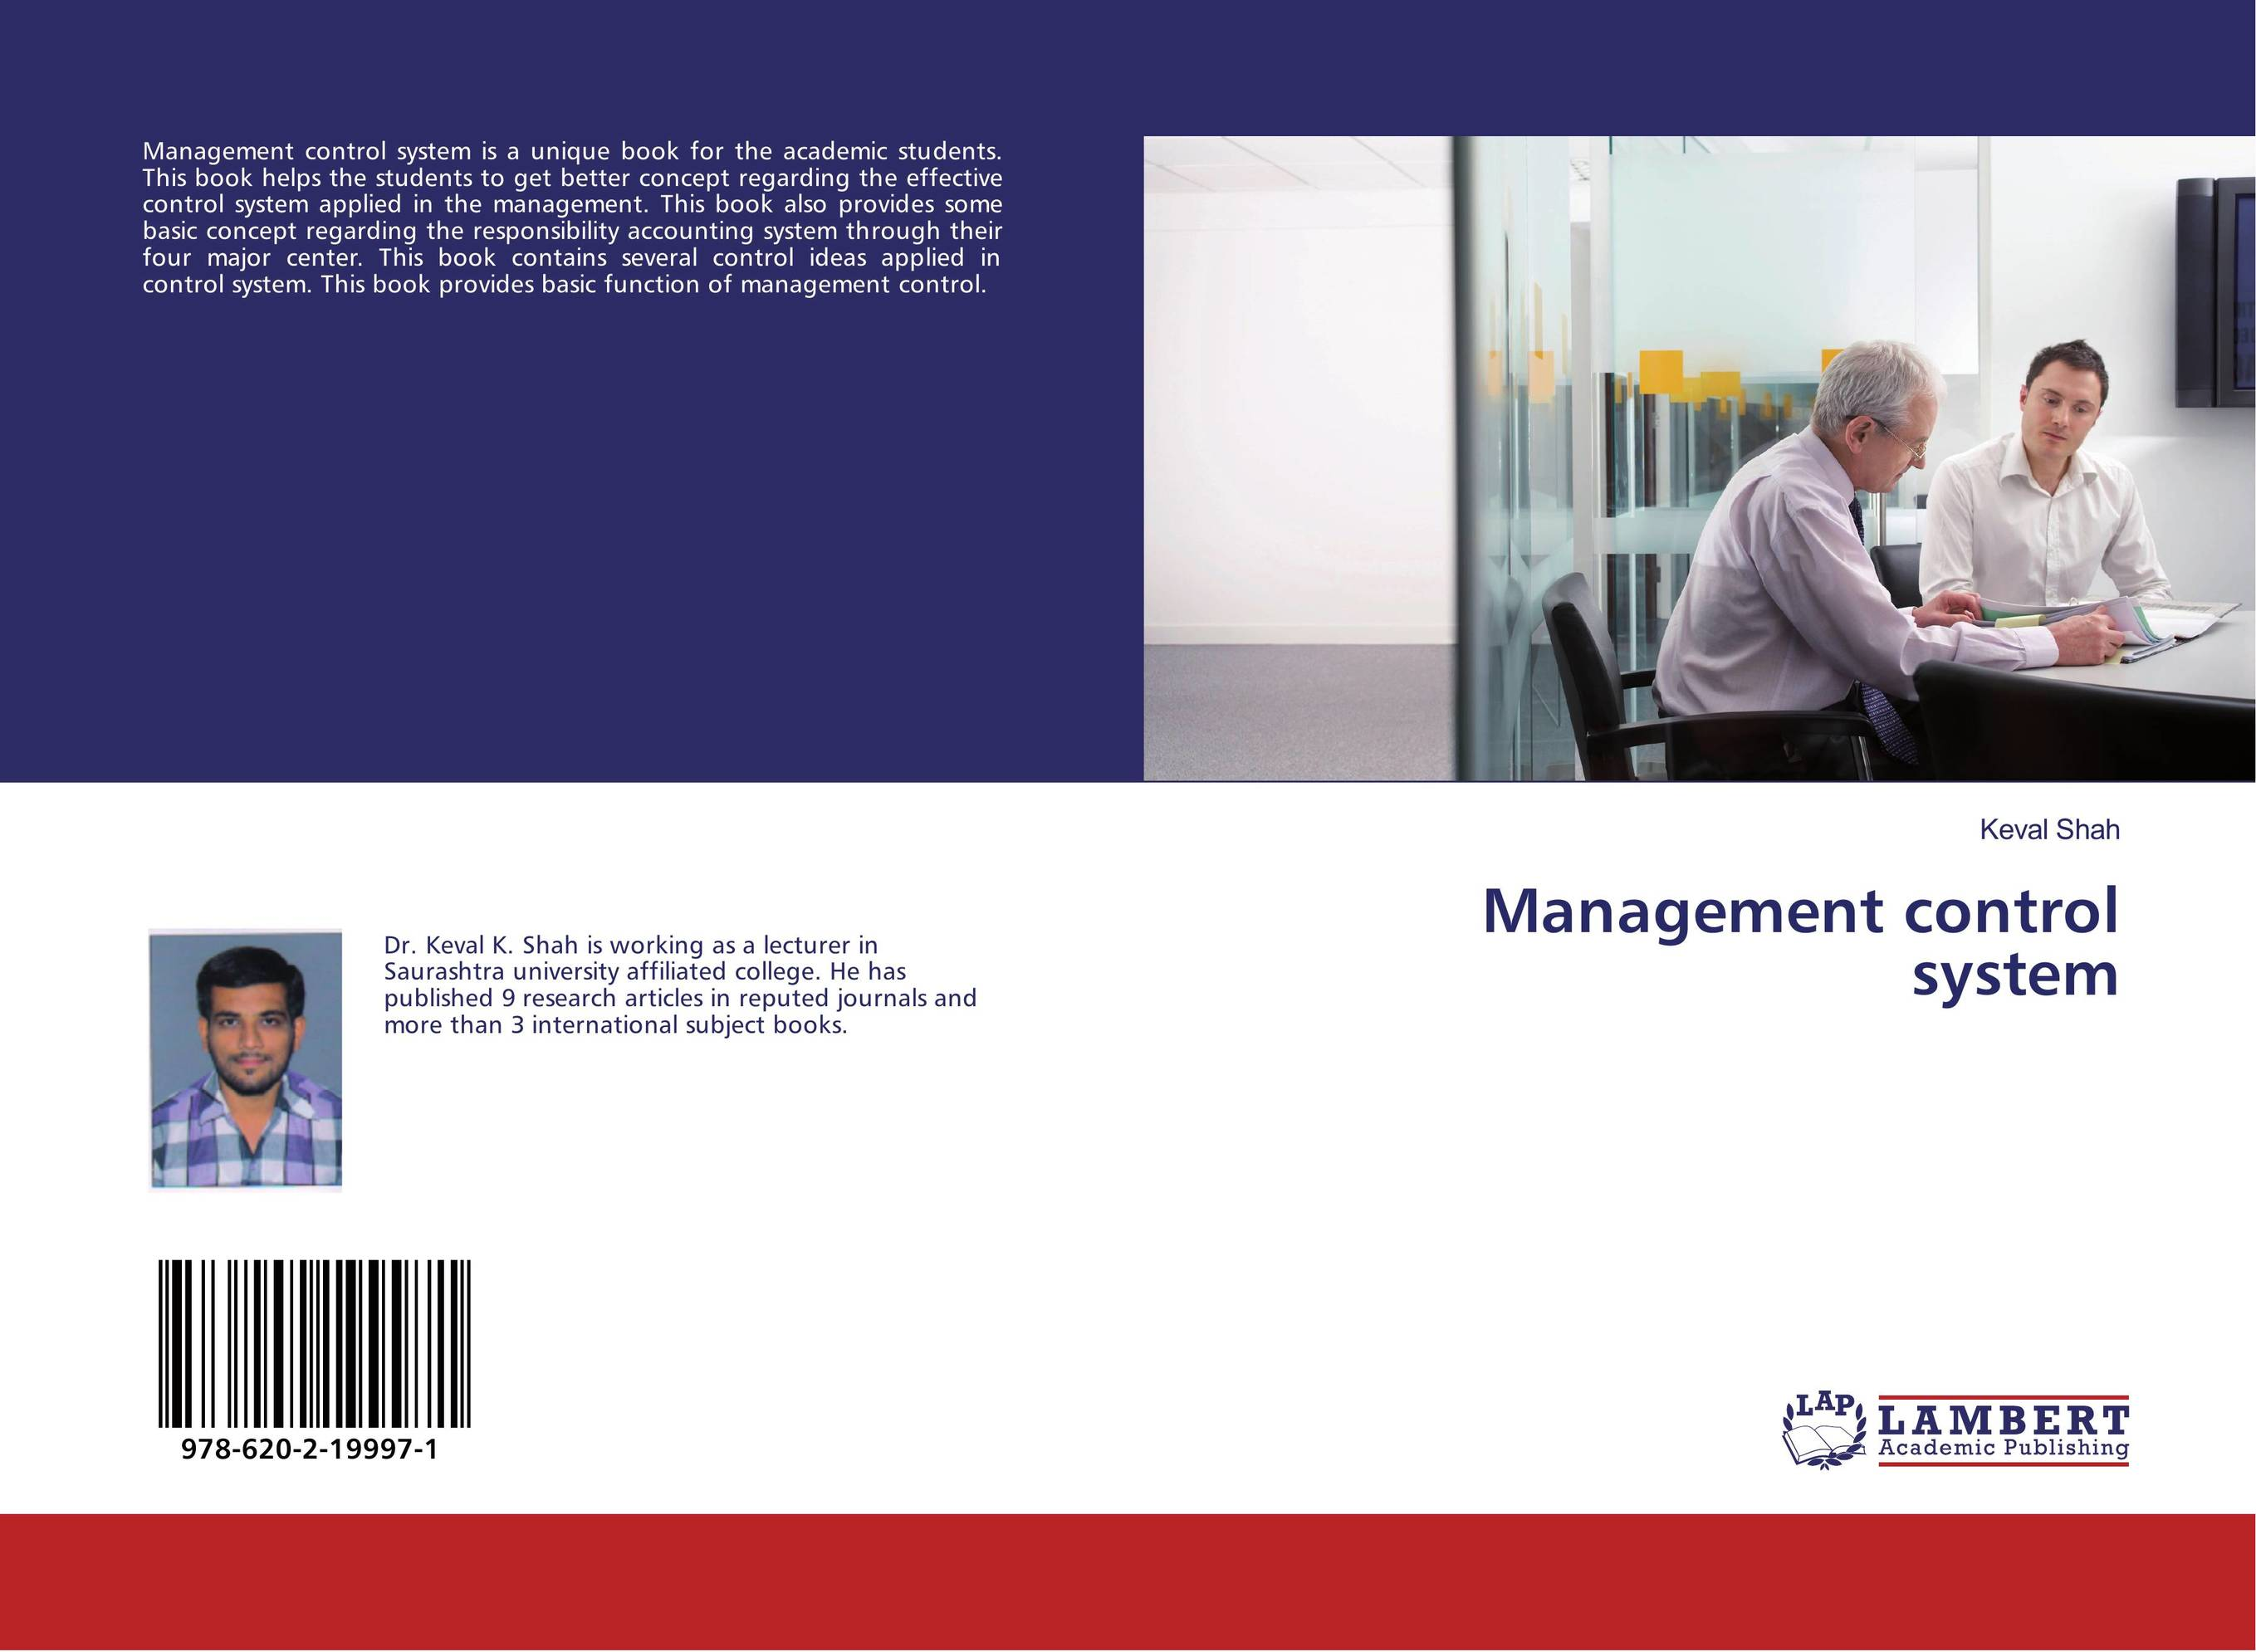 management control system A management control process/system 1) explain the various stages of management control process and its features(2009) 2) draw a plan of ideal management control system in a services sector(2008) 3) explain ideal management control in organization and its features(2006,2004) 4) explain different organizational goals.